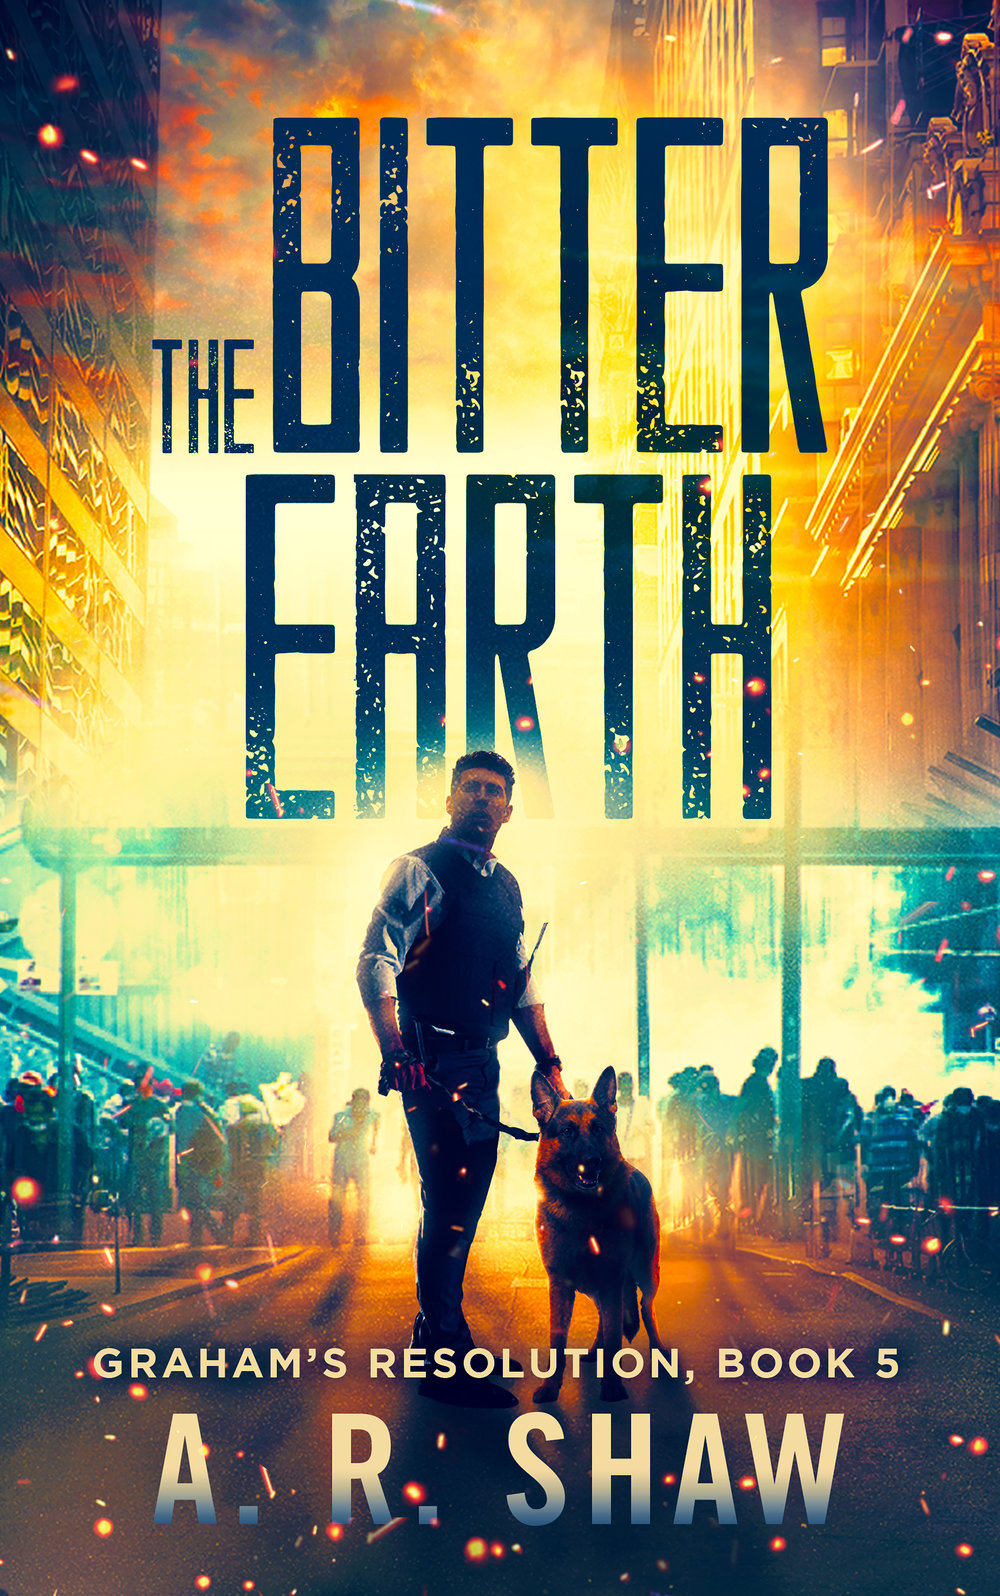 the bitter earth book 5 - ebook.jpg